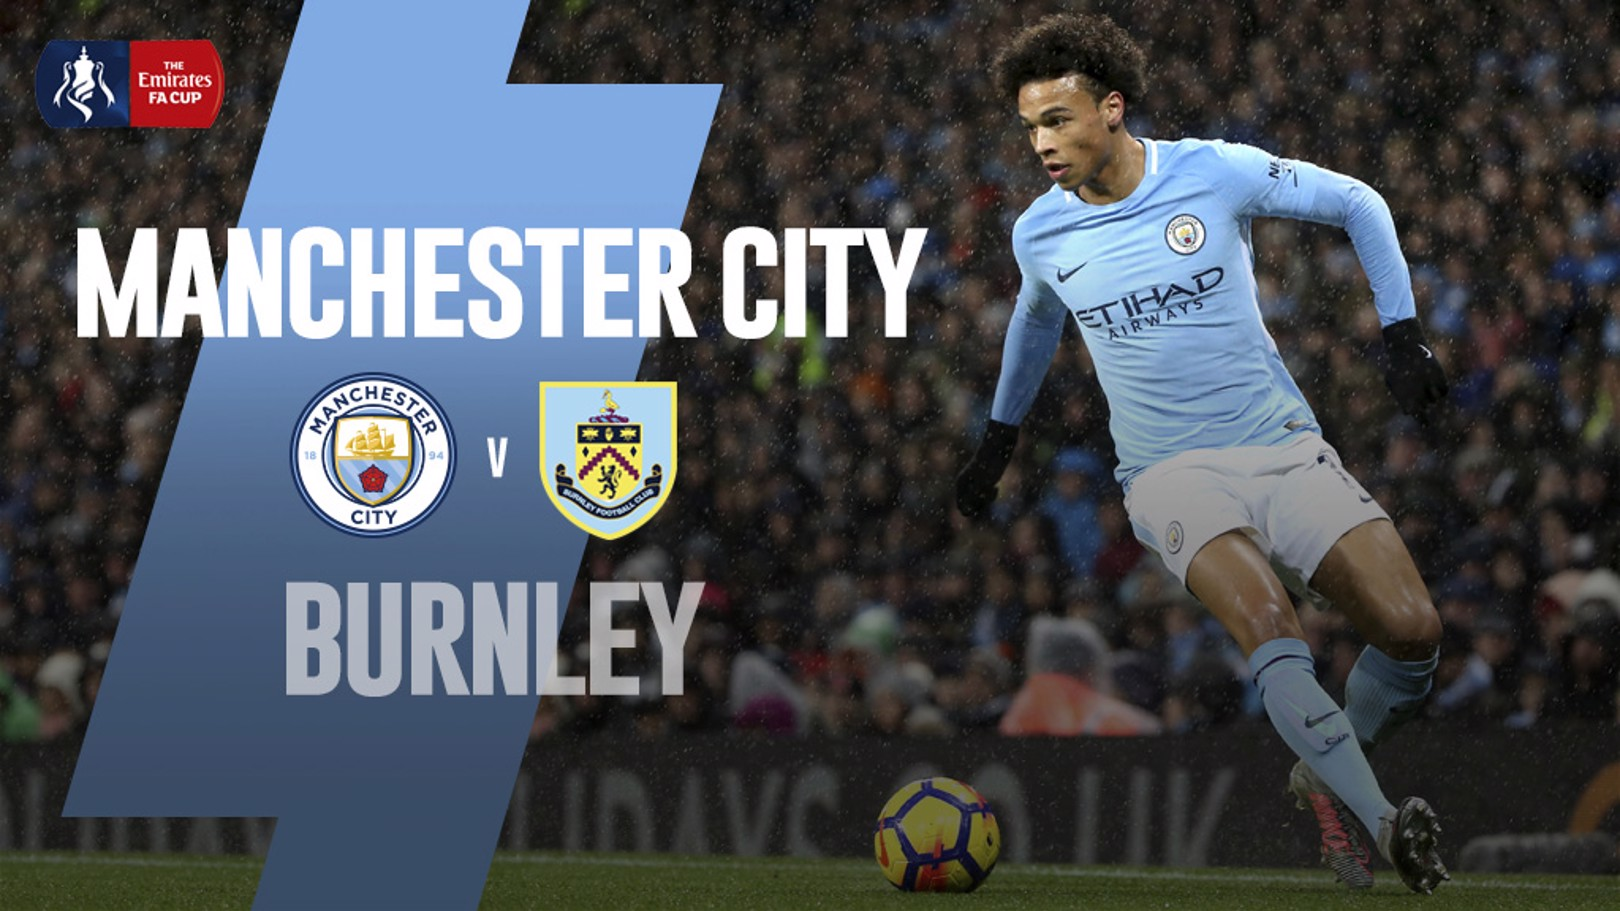 CITY-BURNLEY. Tercera ronda de la FA Cup.